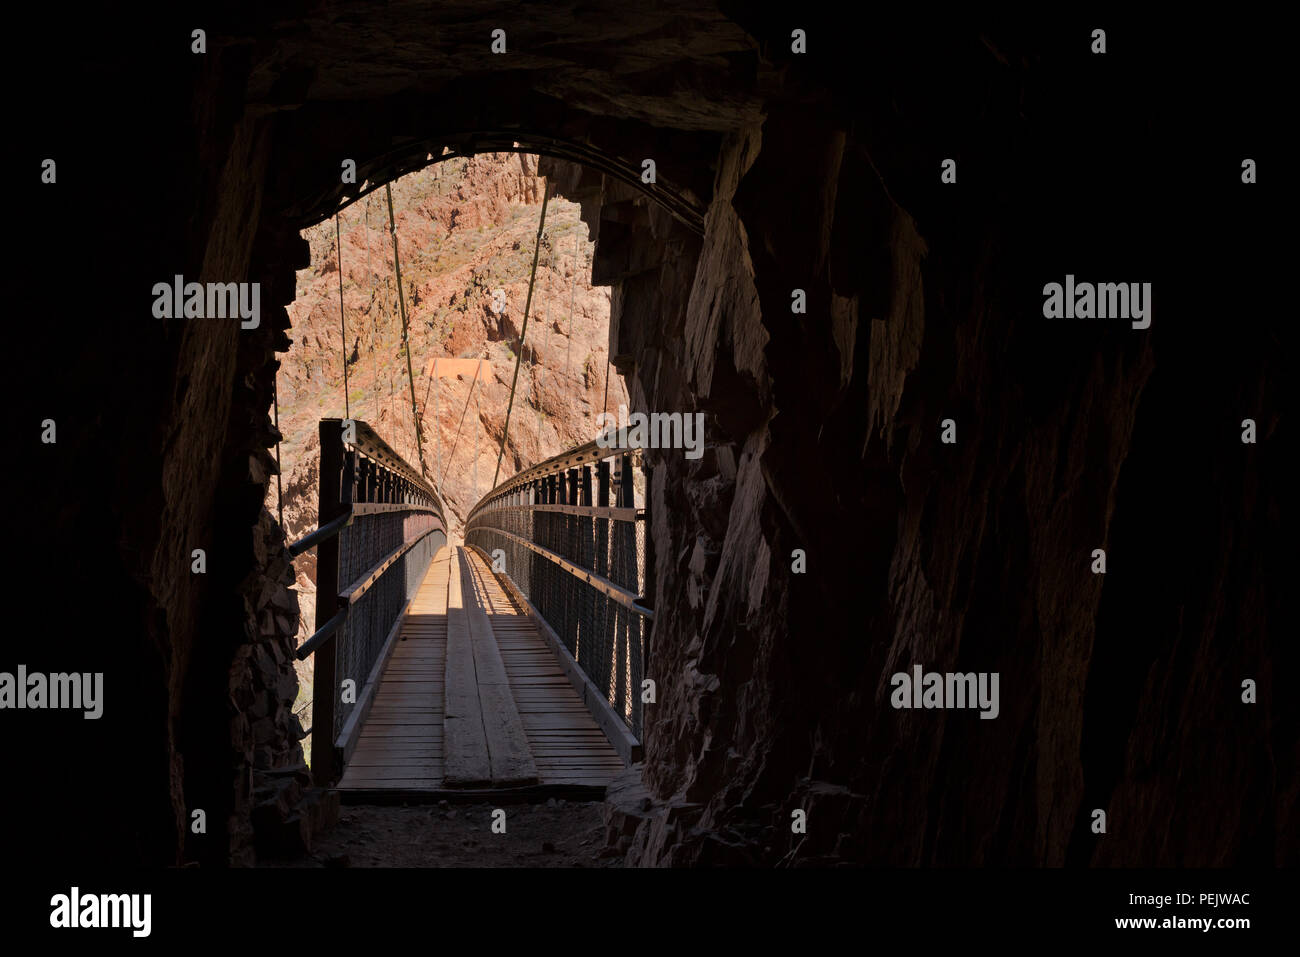 AZ00288-00...ARIZONA - Tunnel through a rock wall leading to the Black Bridge over the Colorado River on the South Kaibab Trail in Grand Canyon Nation - Stock Image